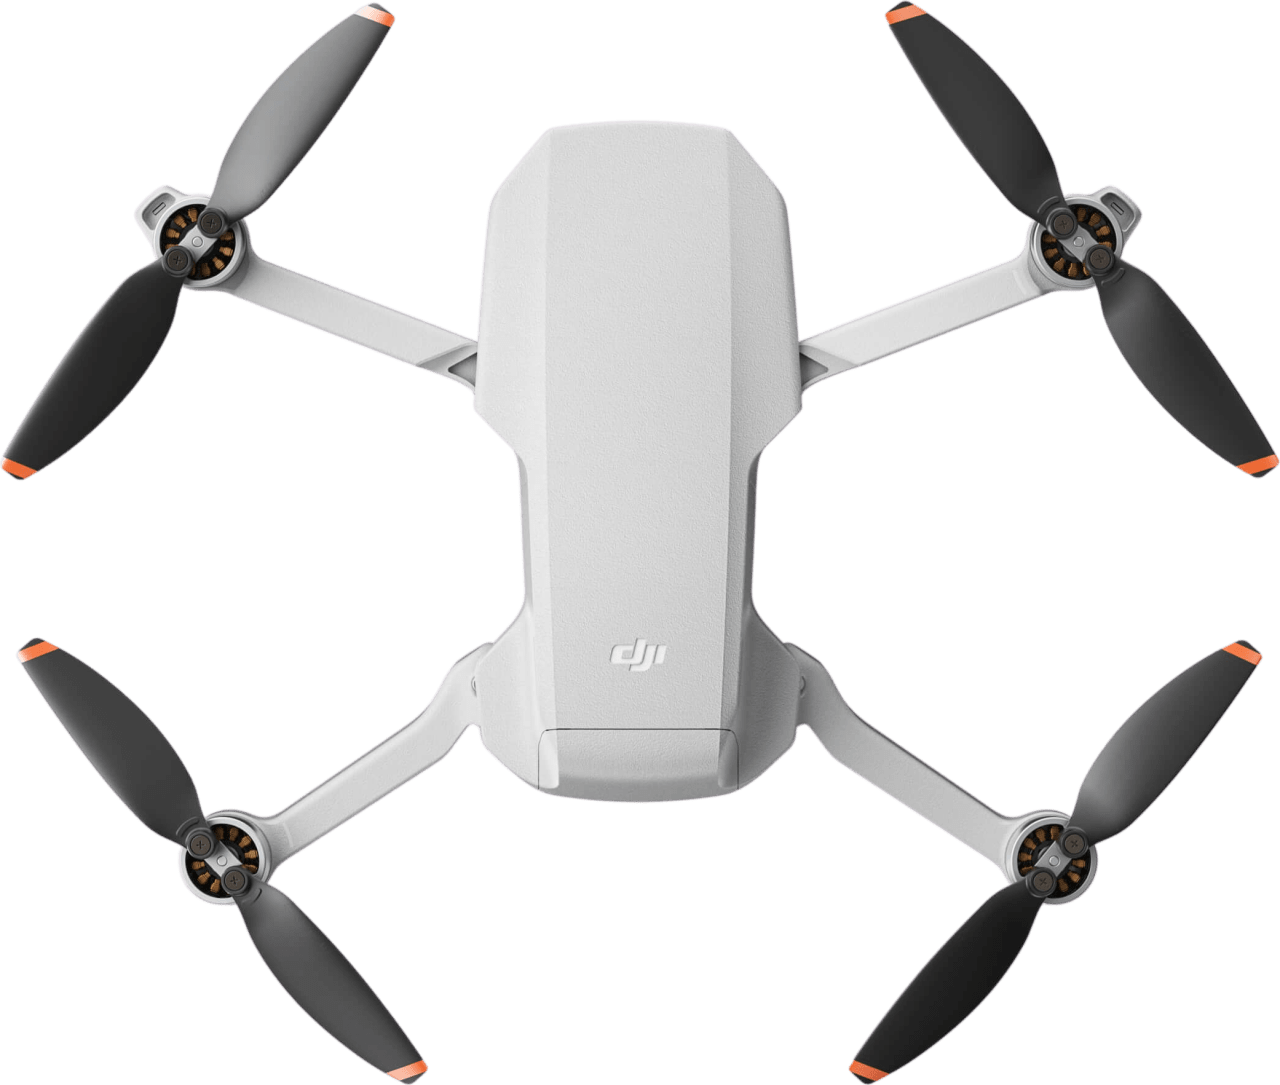 Light Grey DJI Mini 2 Fly More Combo.4